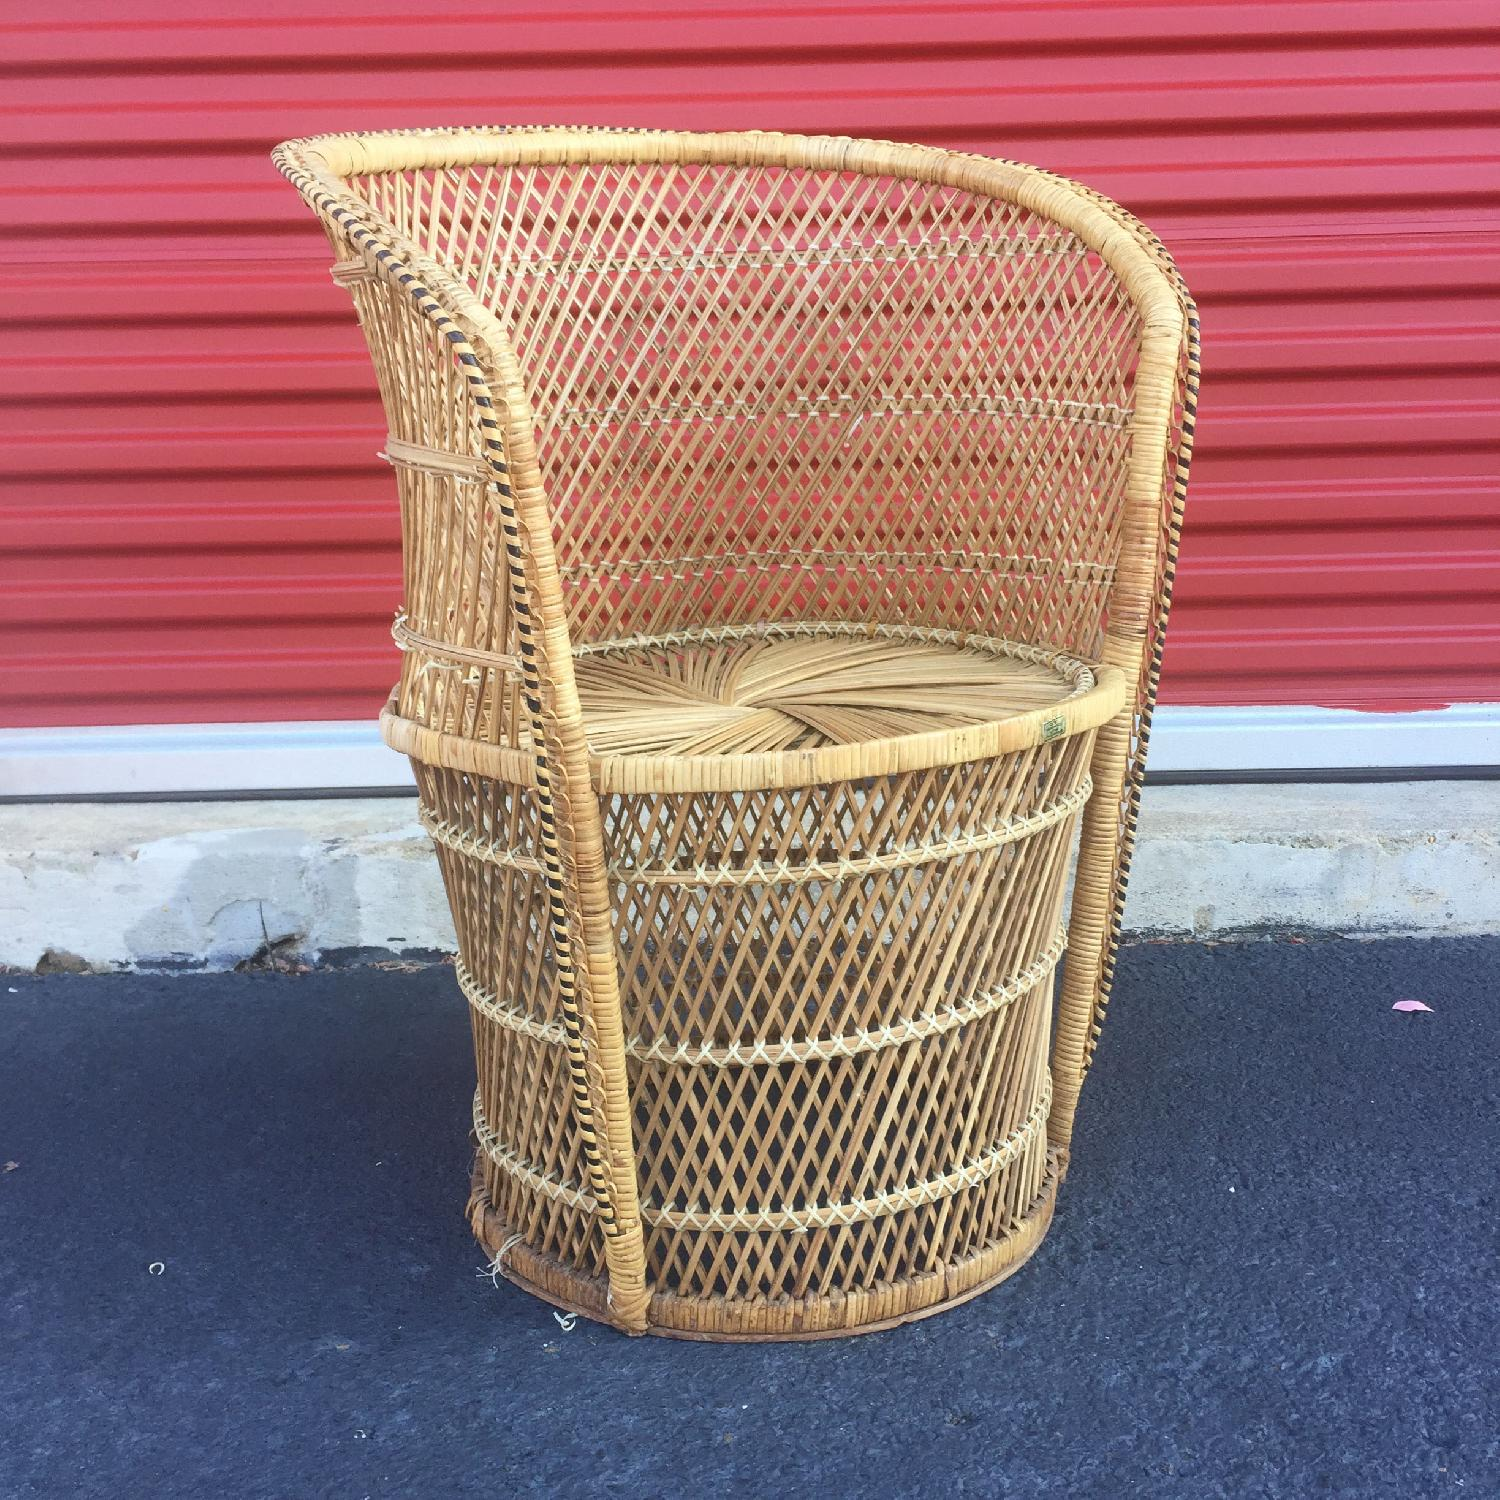 Vintage Wicker Low Throne Chair - image-5